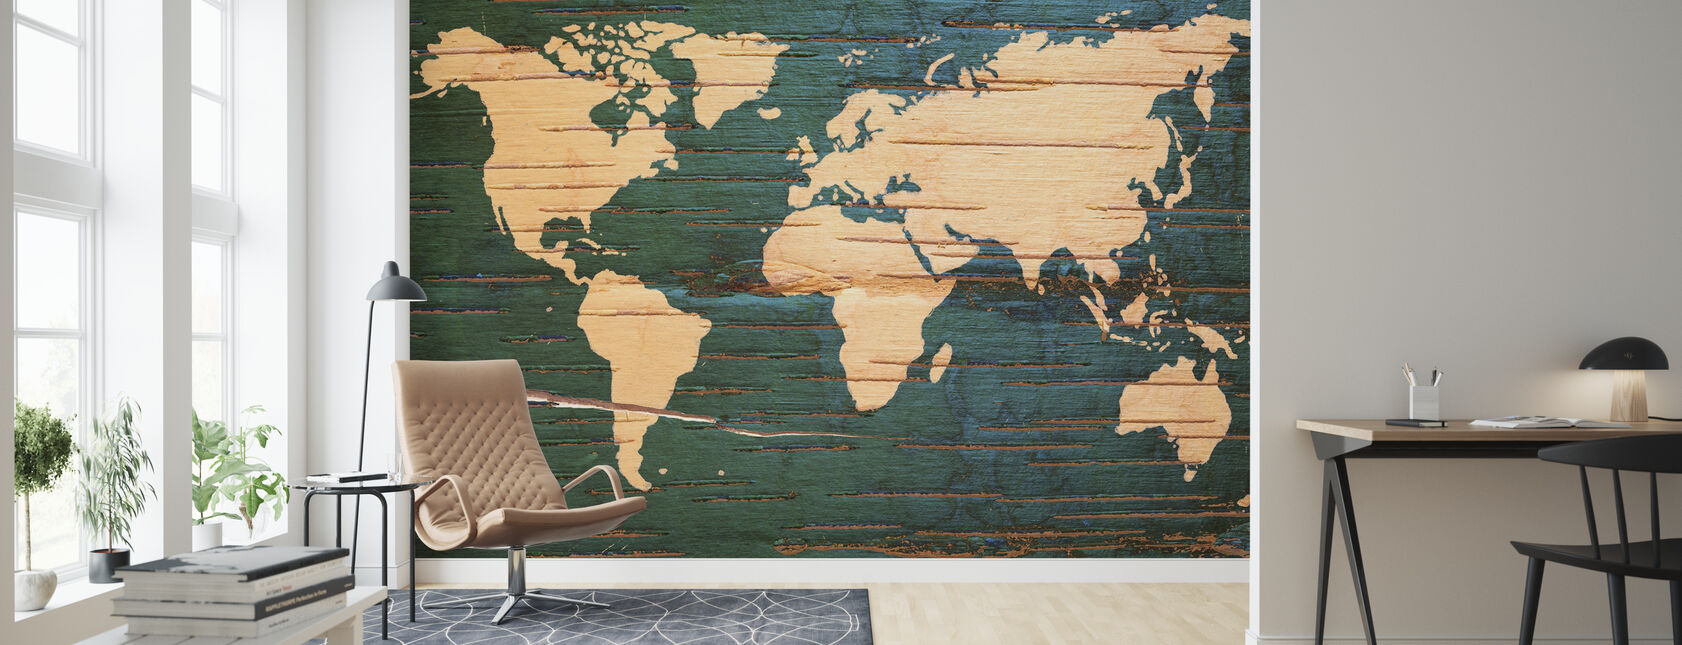 World Map on Wooden Wall - Wallpaper - Living Room